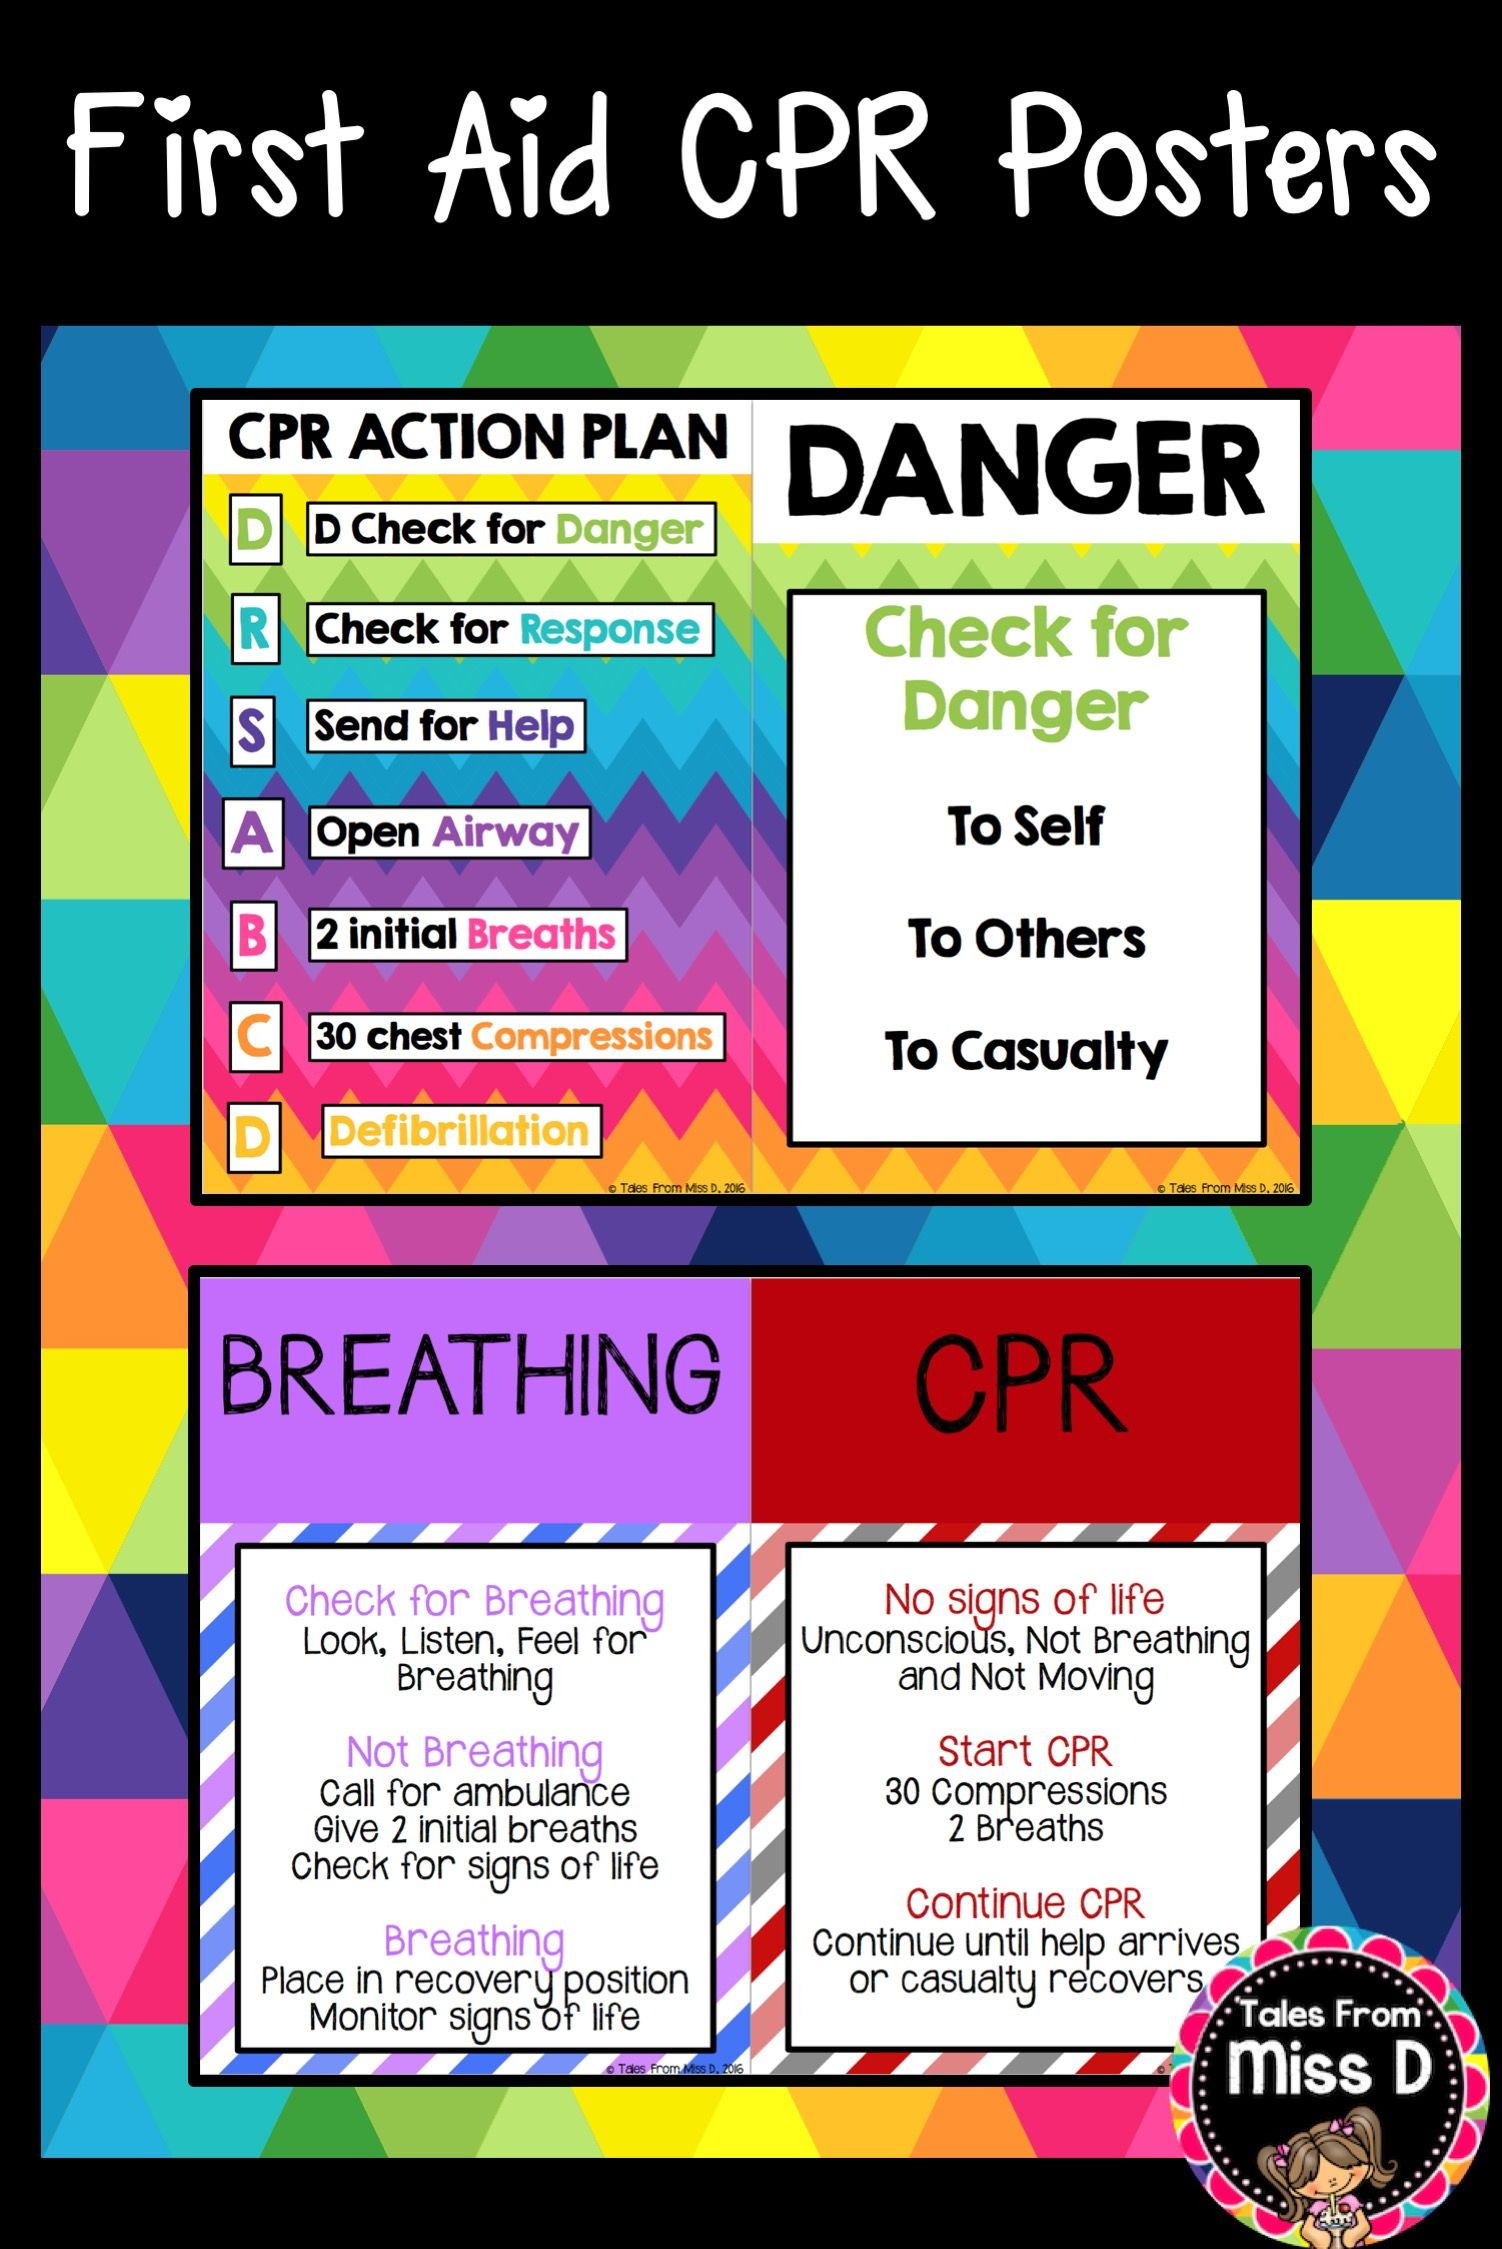 First aid cpr posters students and health lessons first aid cpr posters xflitez Gallery